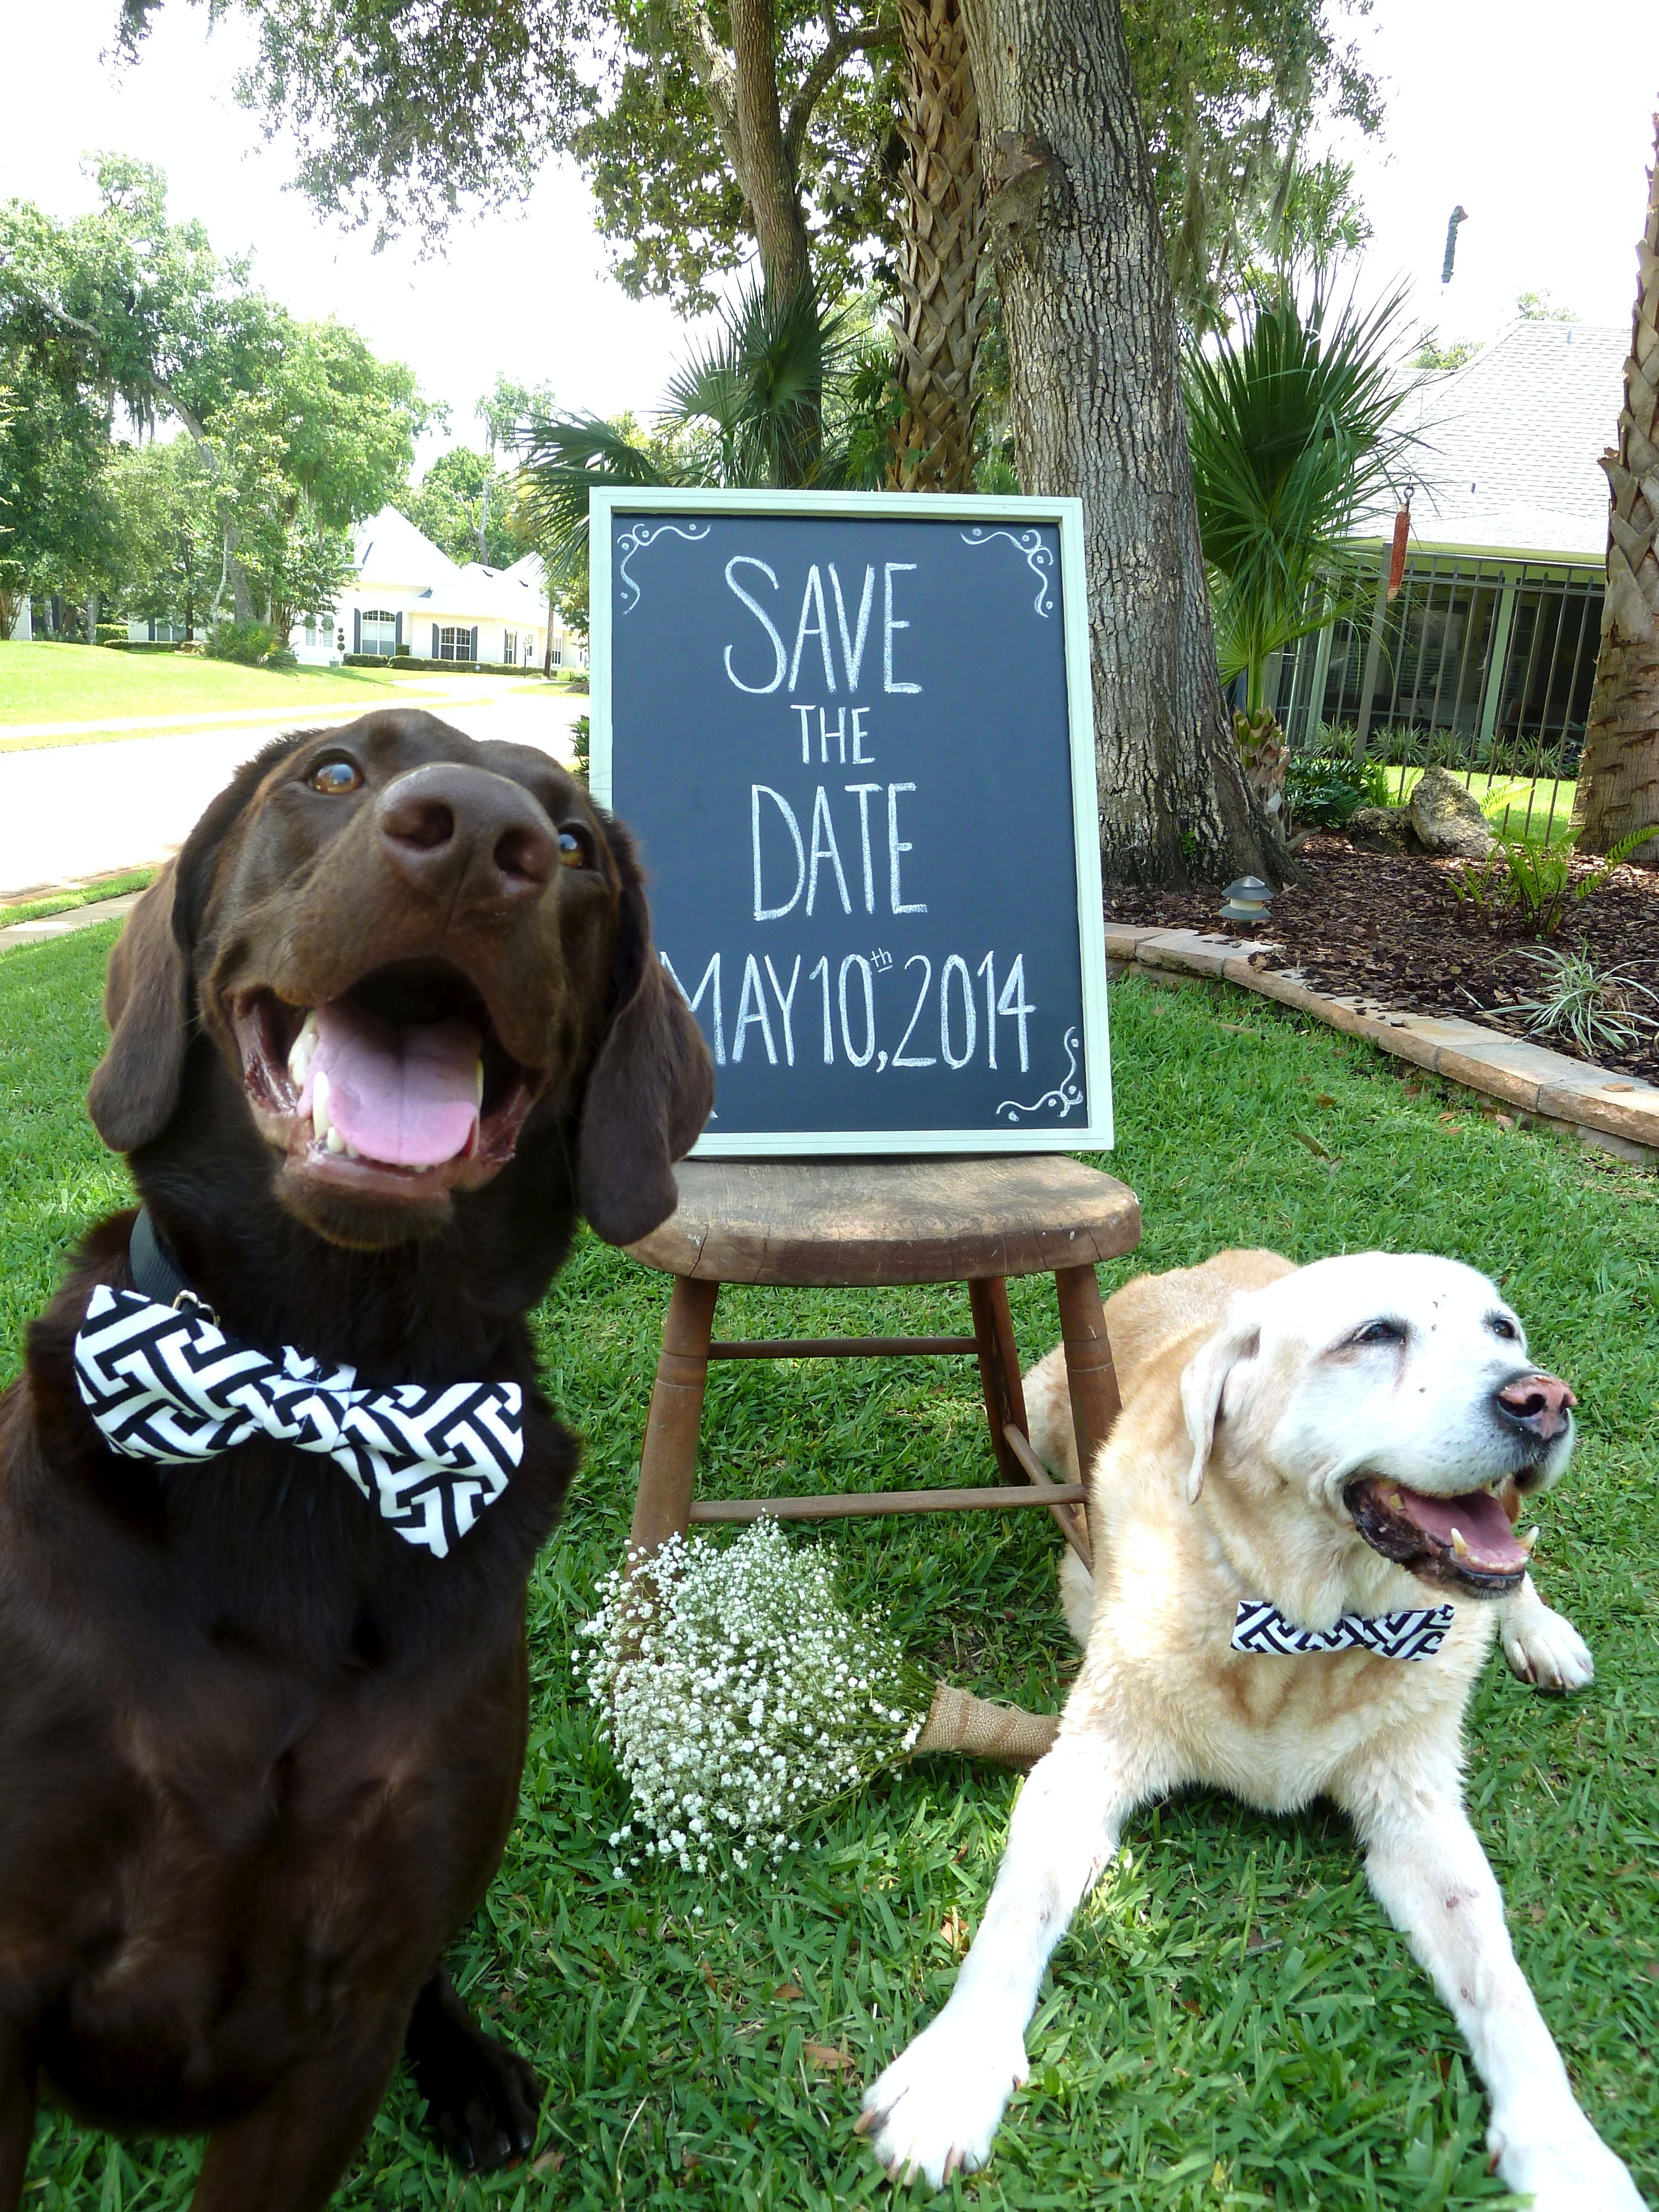 save the date with dogs photos, I also like the idea of having ...